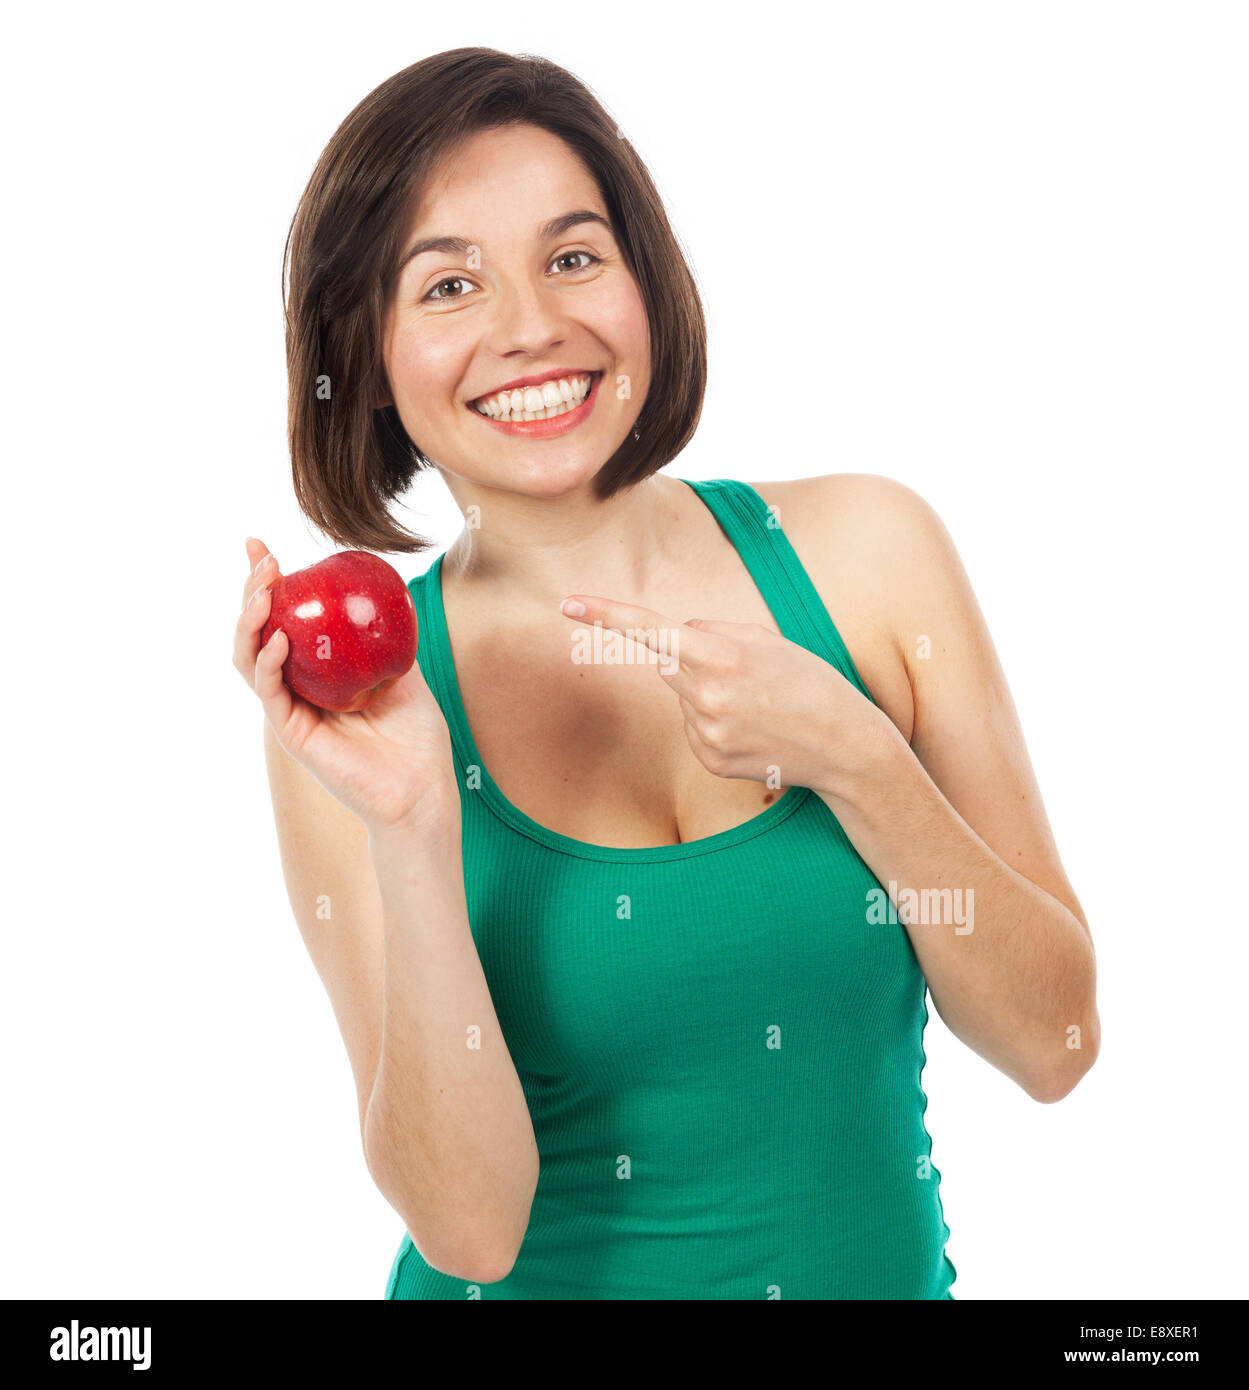 Beautiful young woman holding and showing a red apple, isolated on white - Stock Image